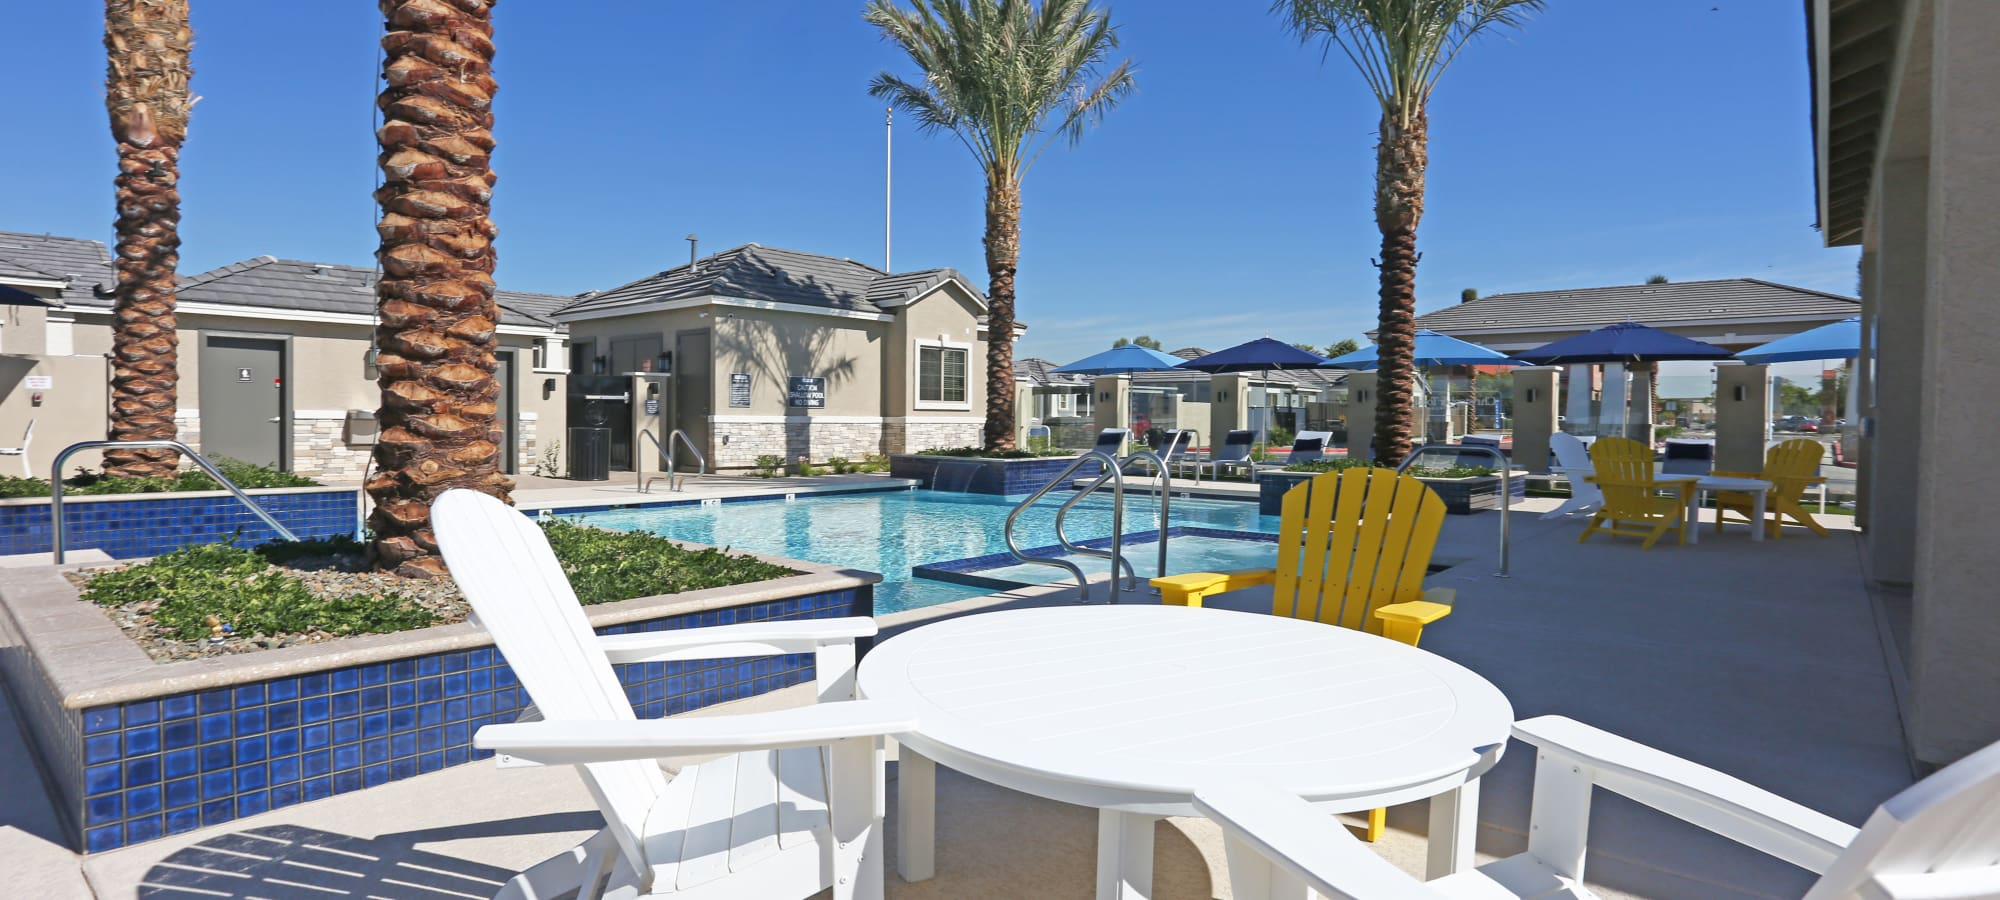 Comfortable seating near the pool at Christopher Todd Communities At Marley Park in Surprise, Arizona